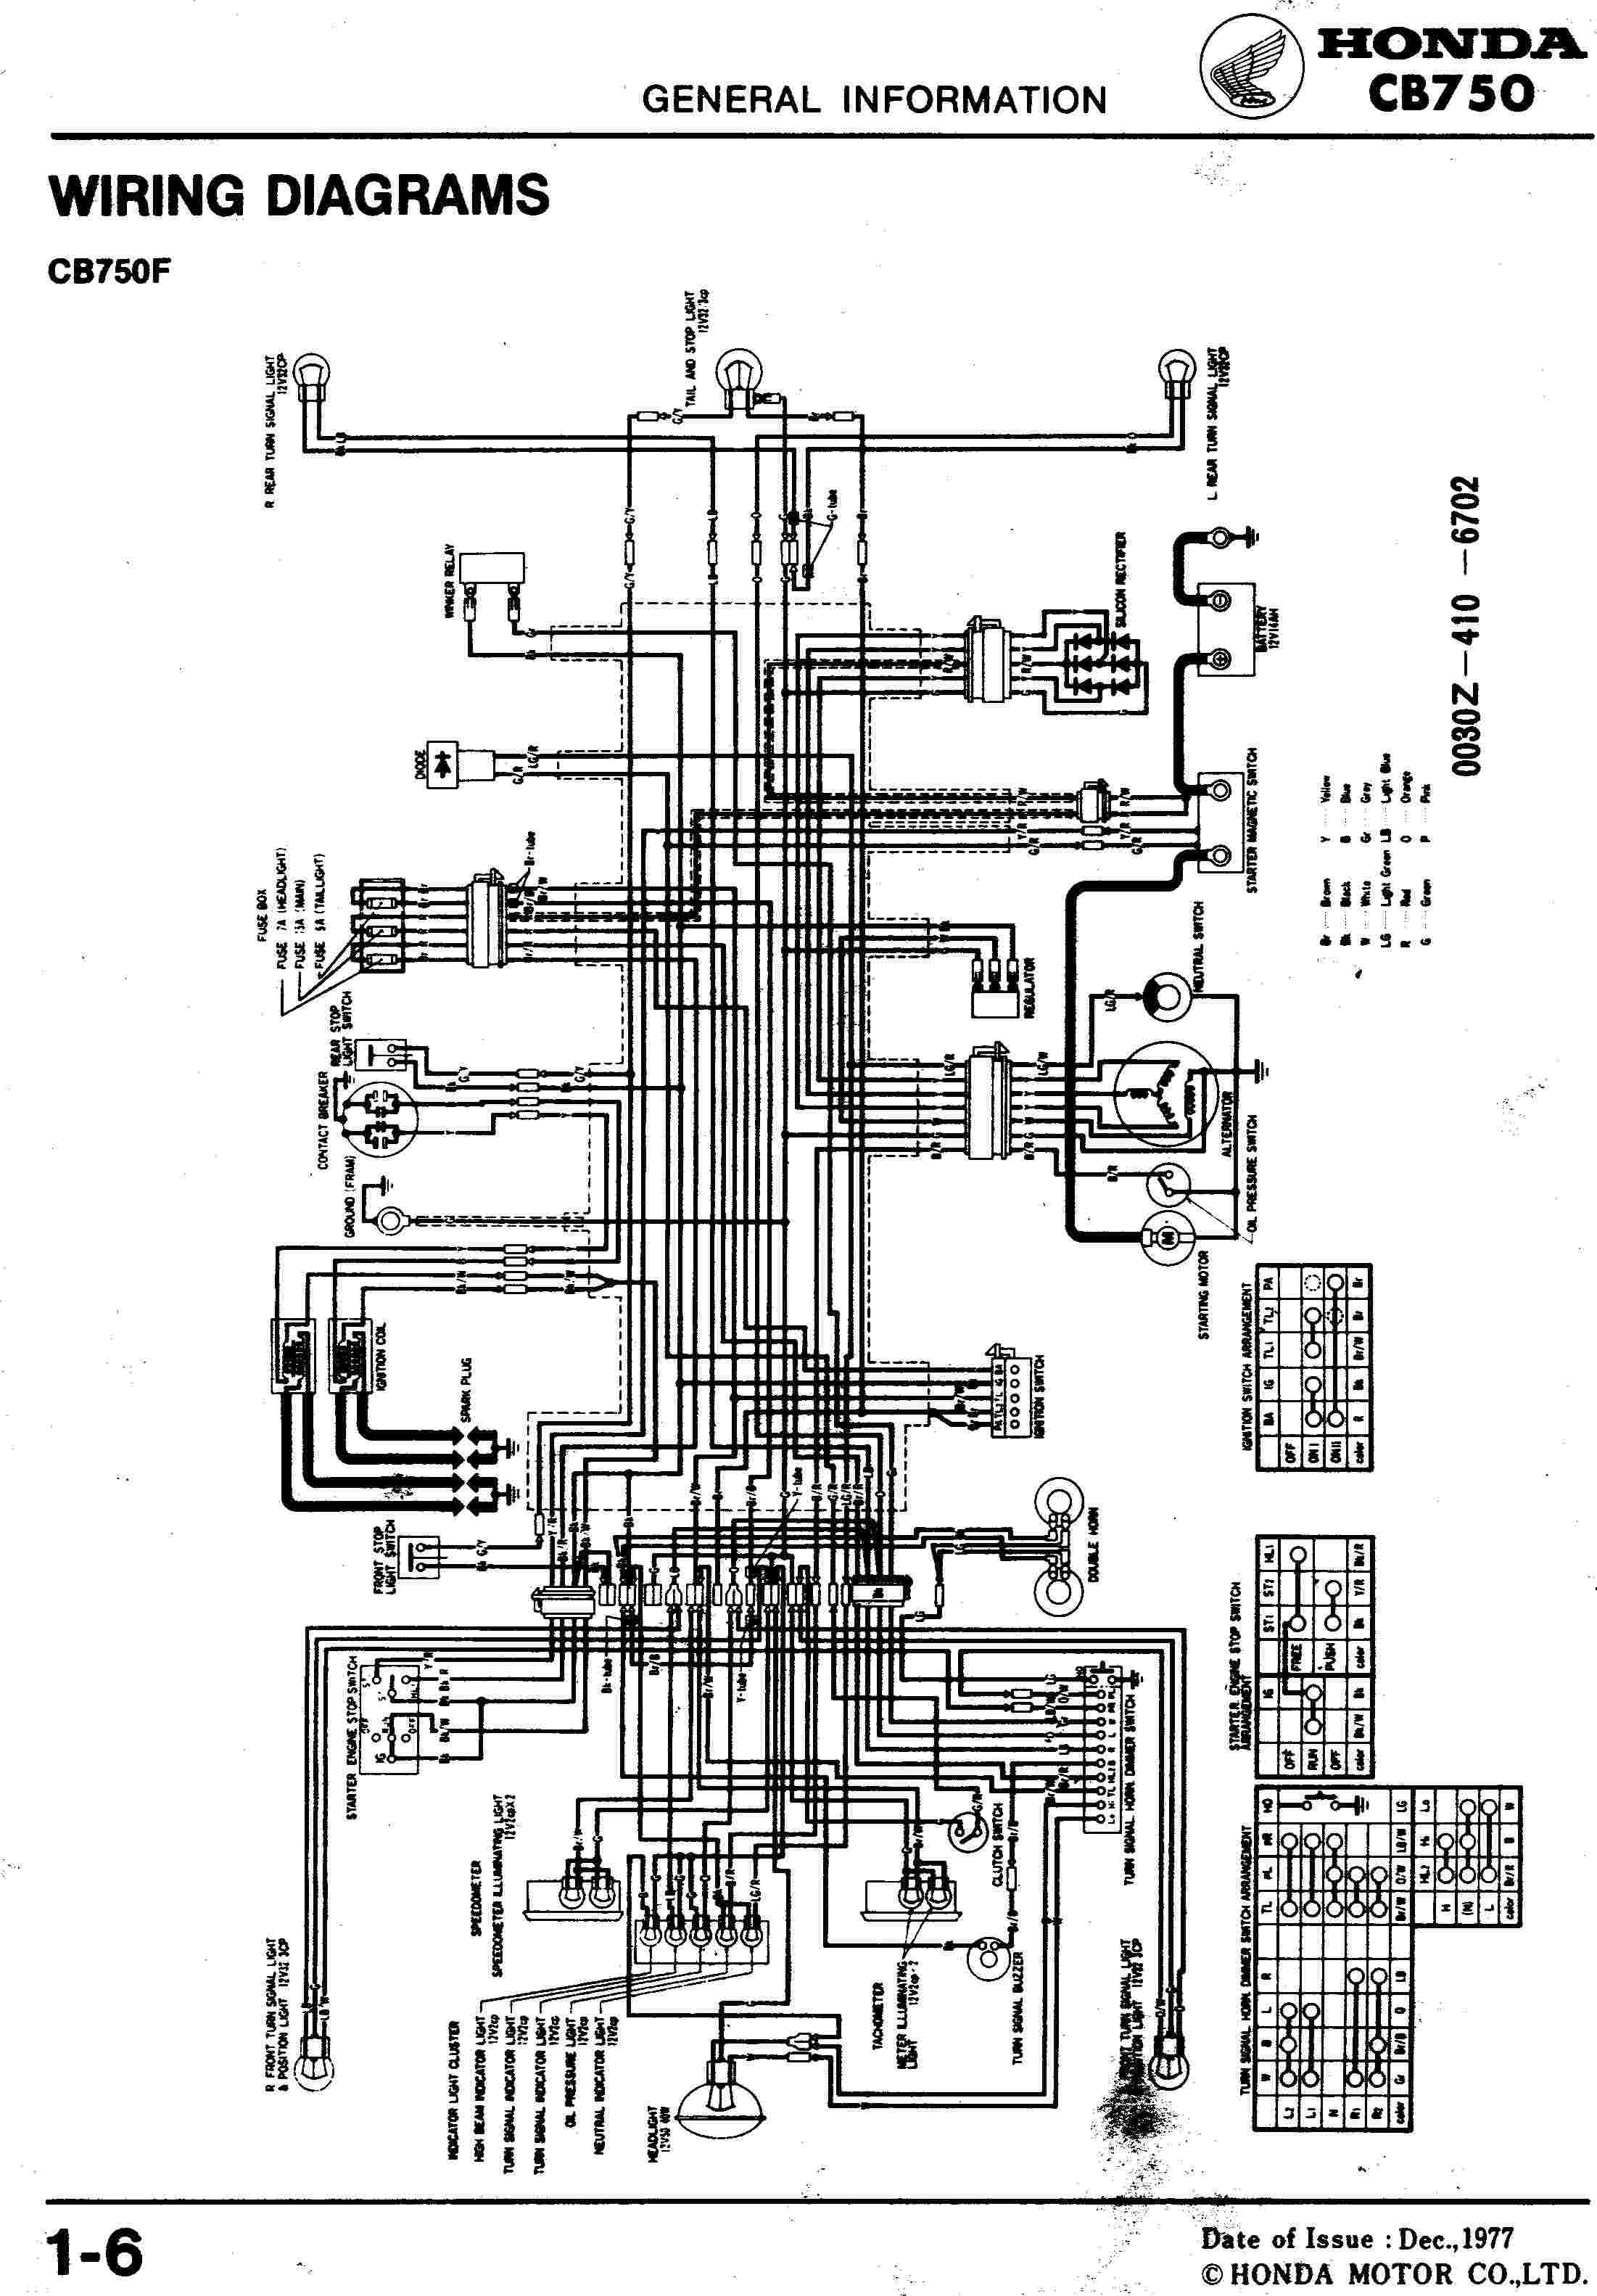 diagram of honda civic exhaust system wiring diagram of honda livo honda cb750k2